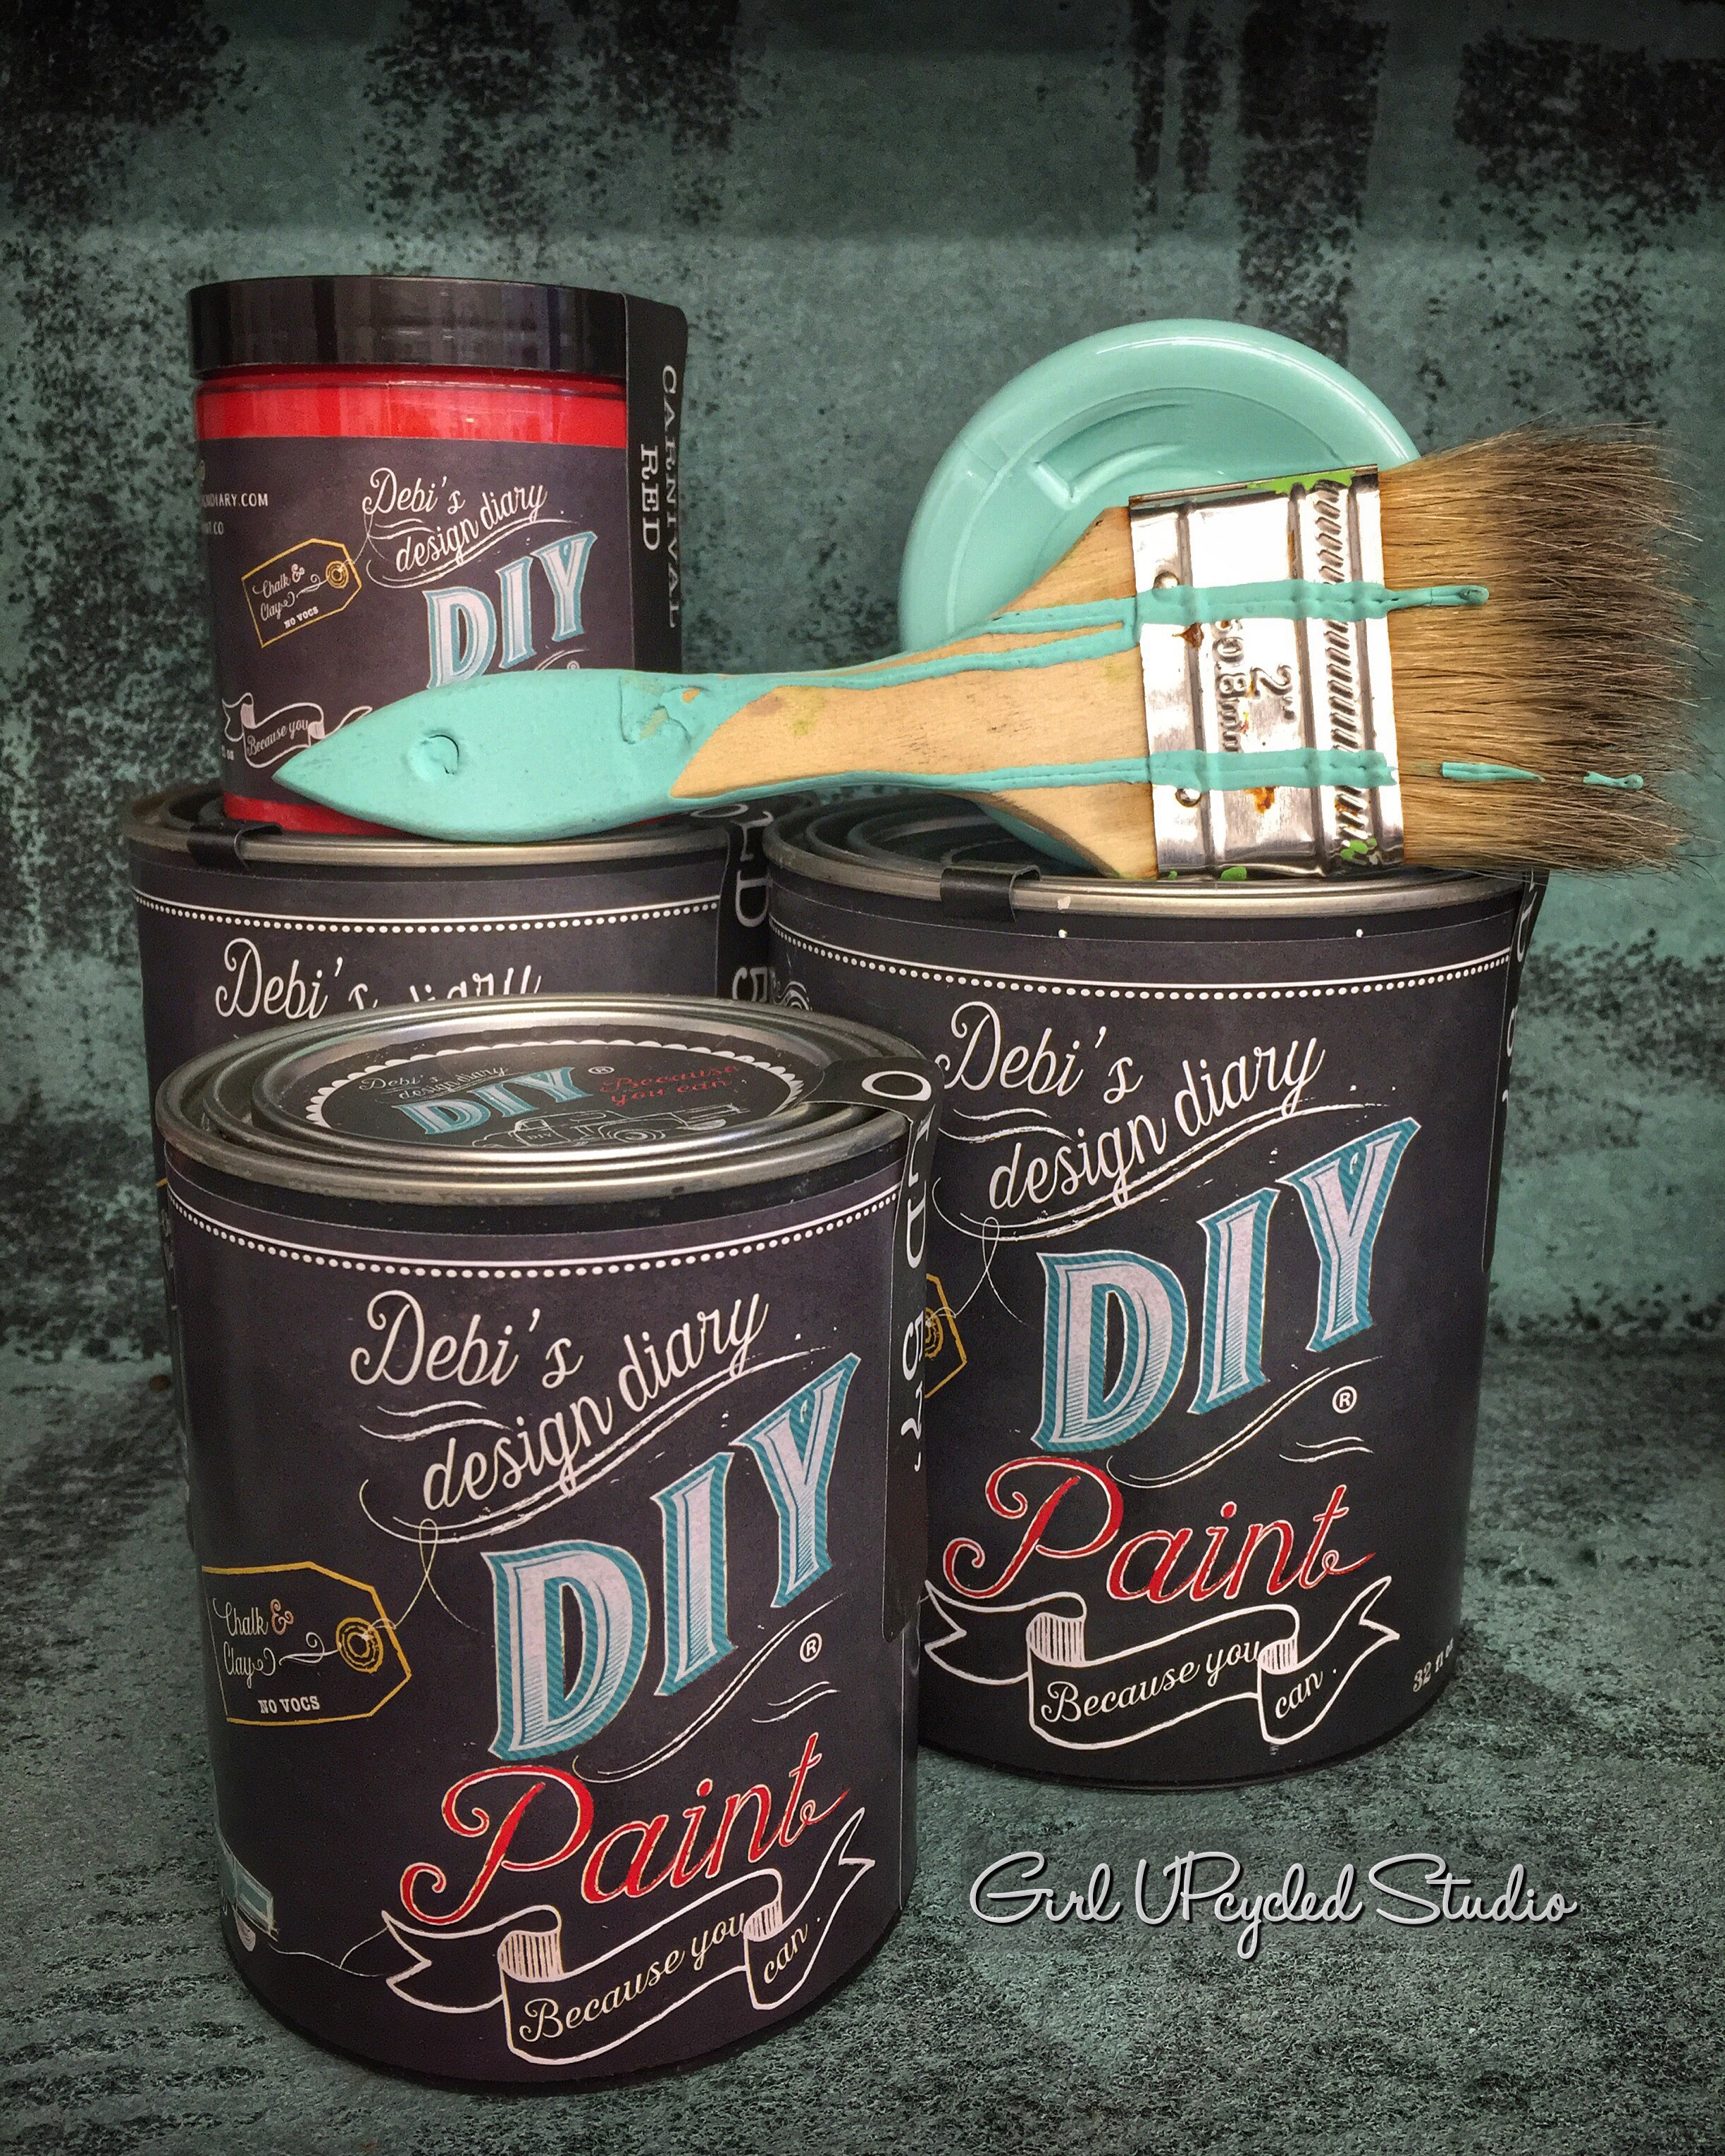 girl-upcycled-studio-products-painted-furniture.jpg